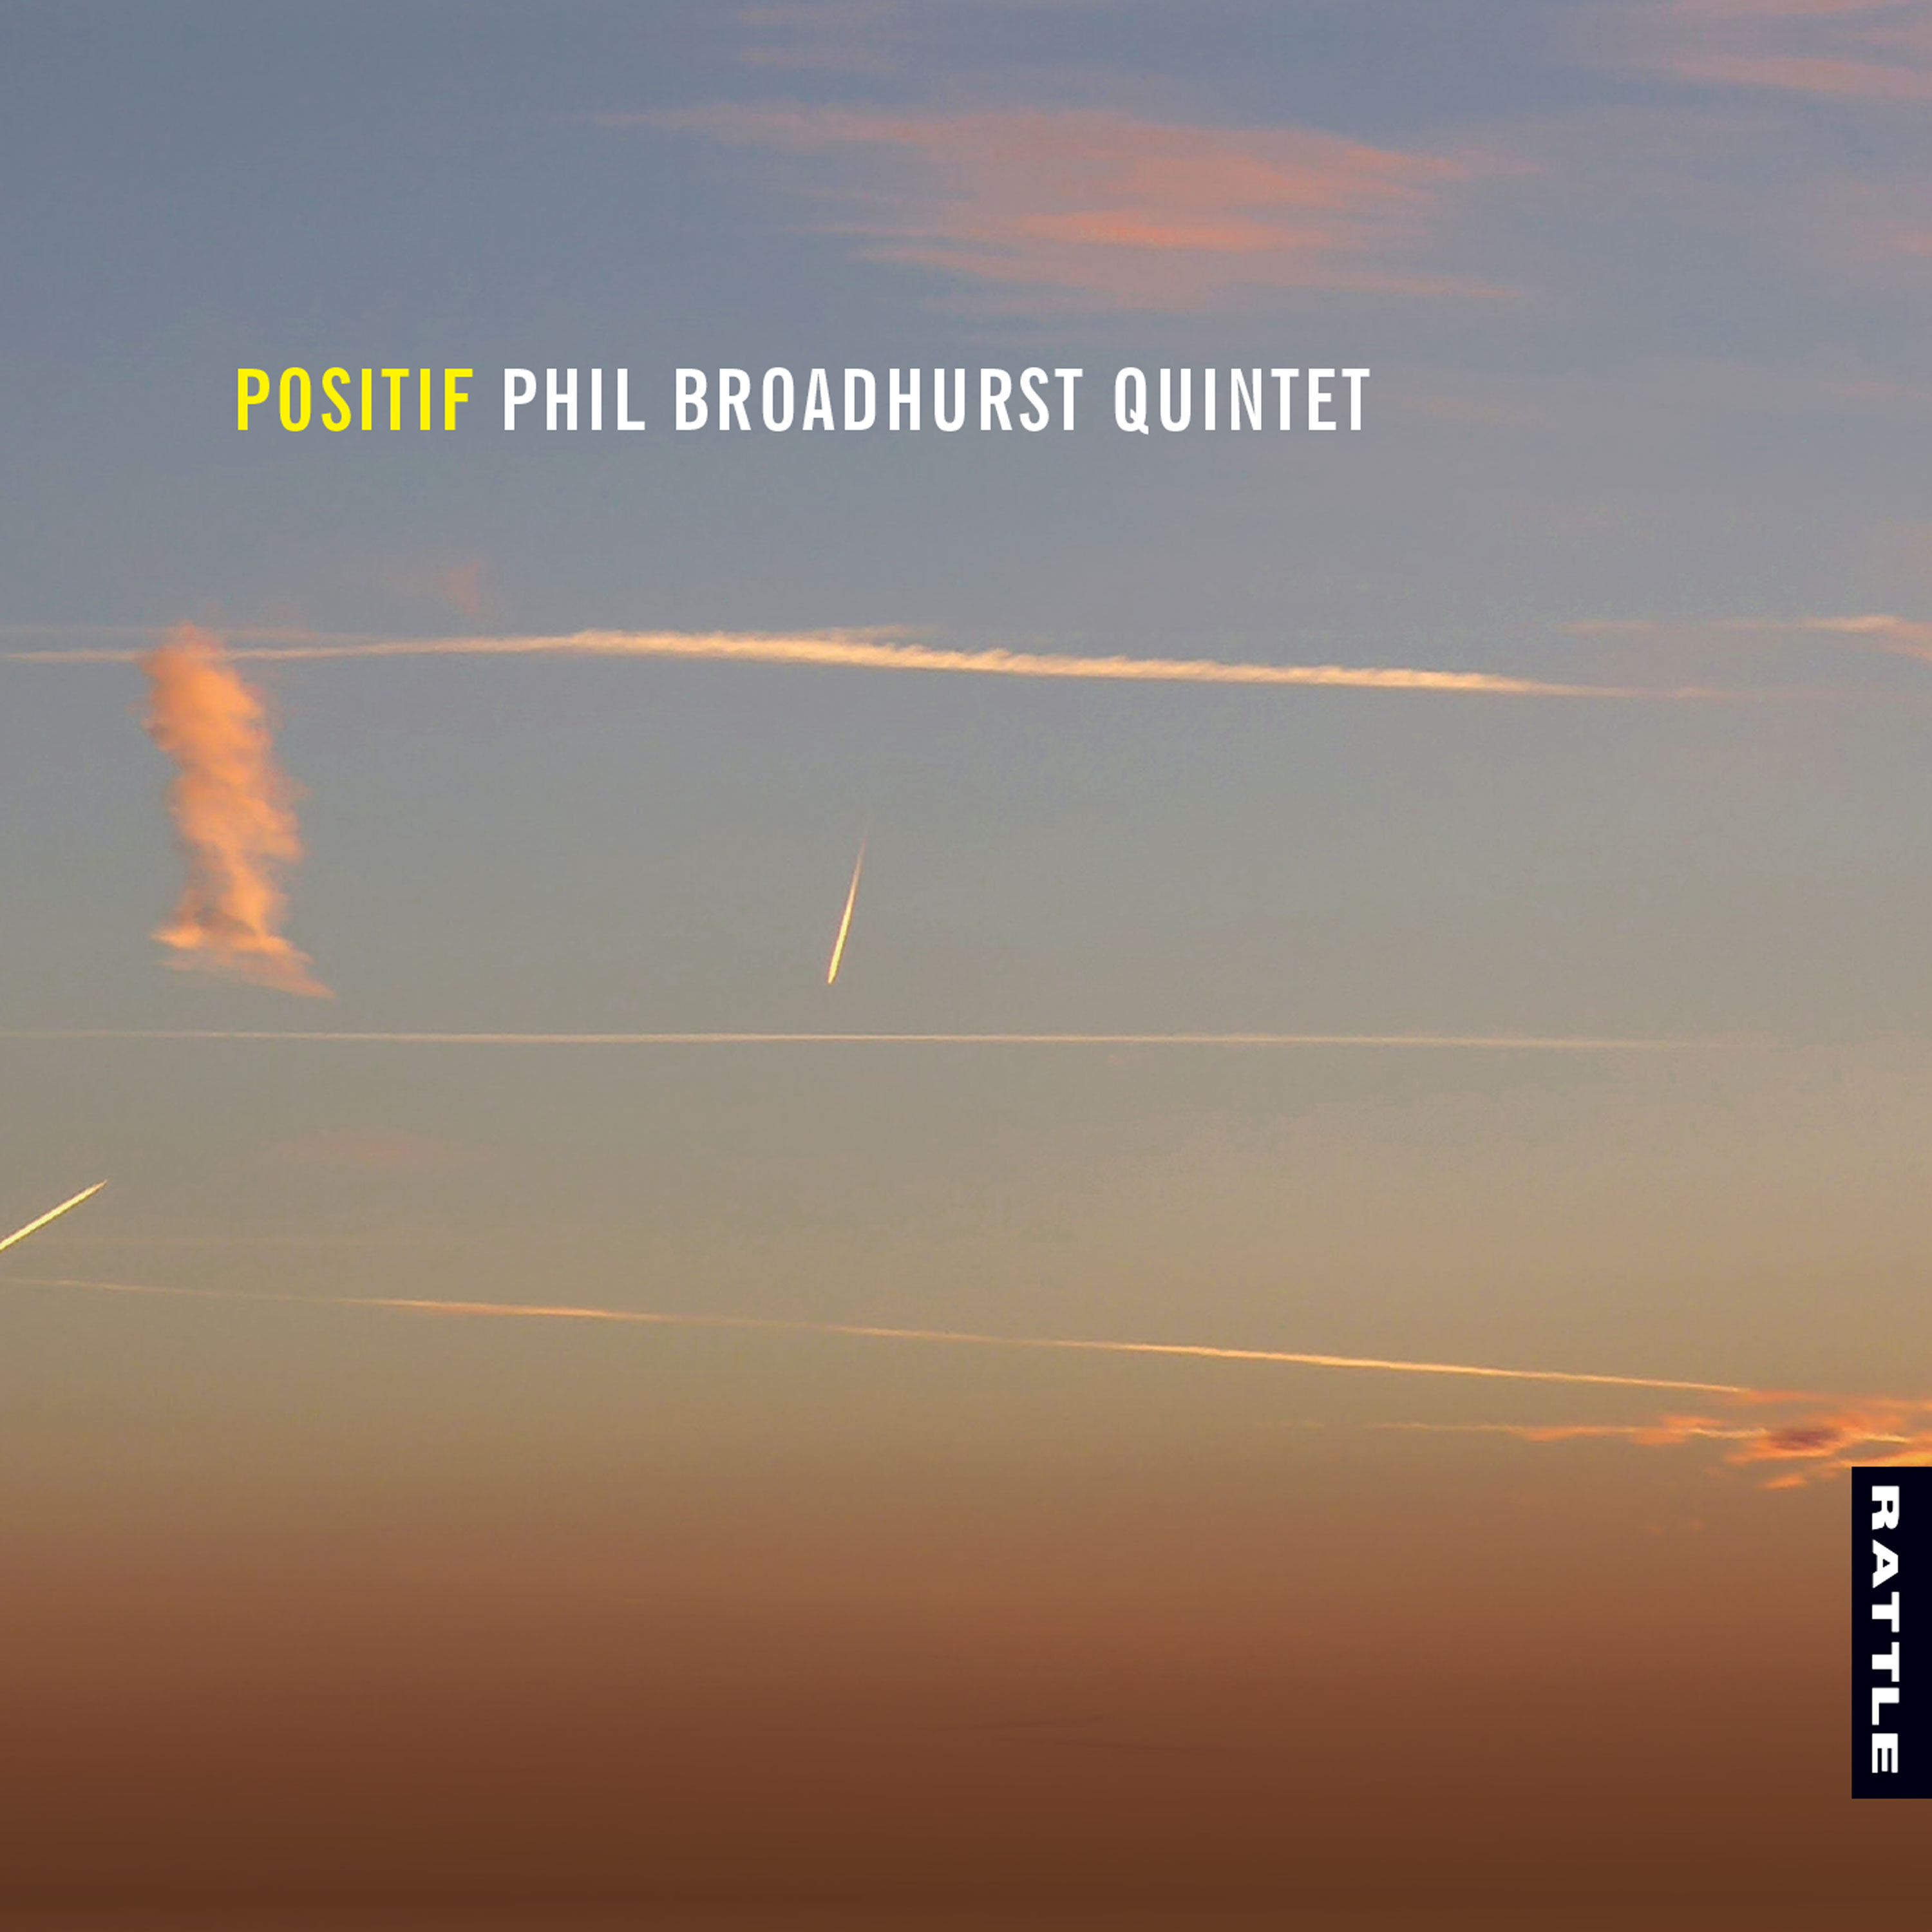 Phil Broadhurst Quintet | Positif - downloadable MP3 ALBUM